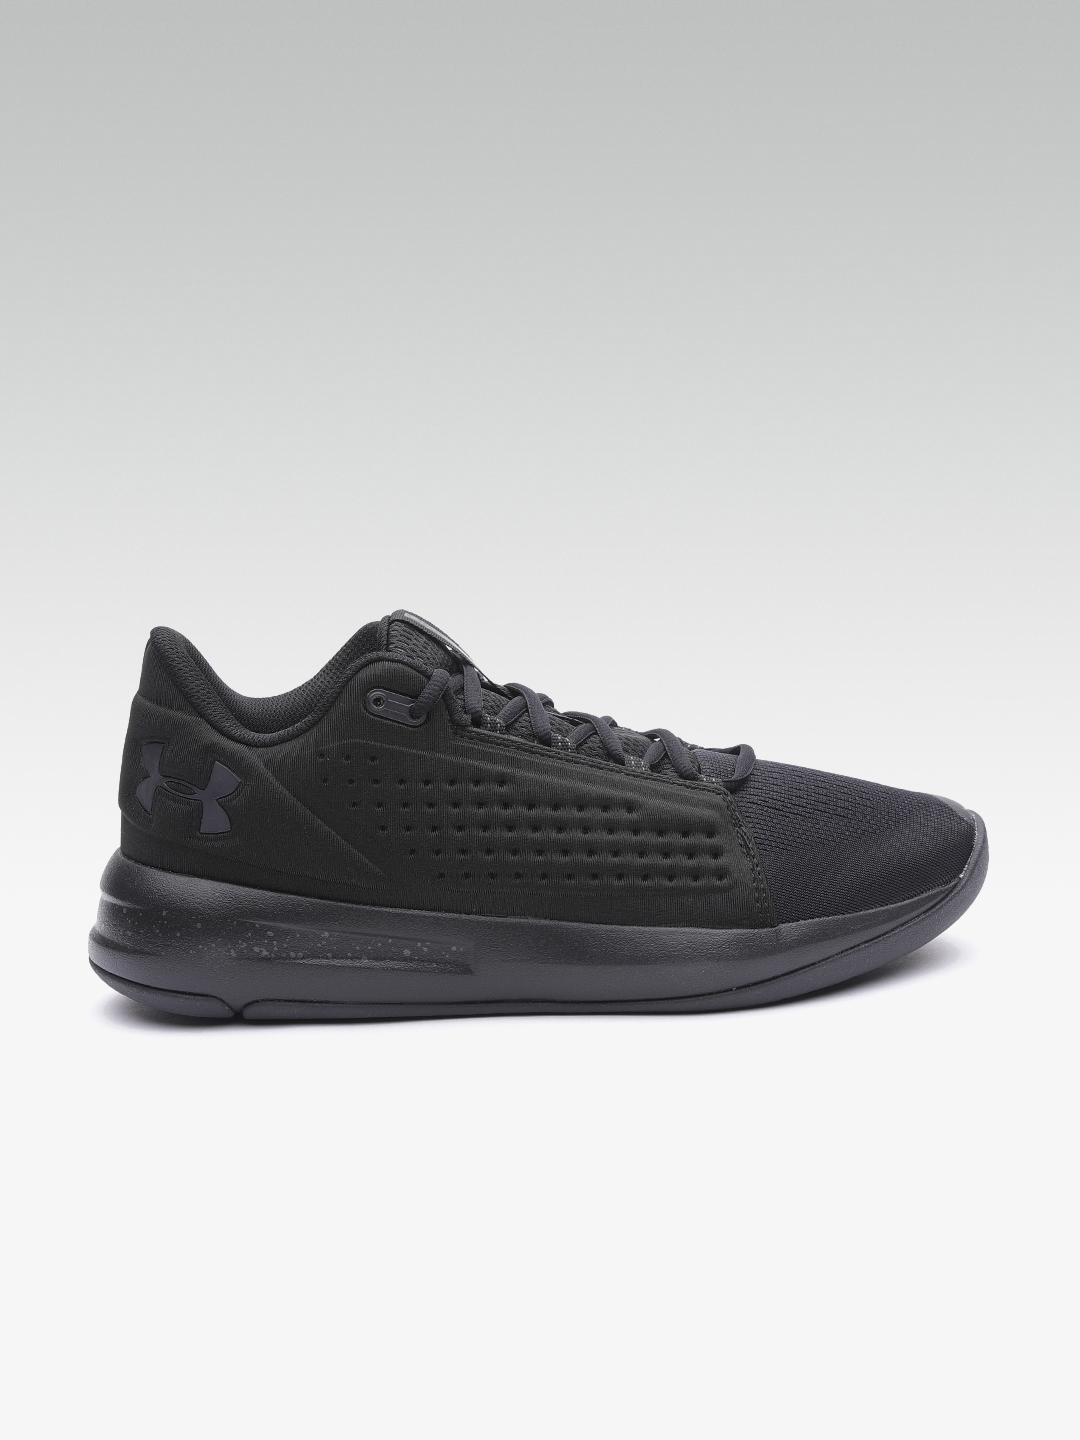 newest collection 8d975 ee9fc UNDER ARMOUR Men Black UA Torch Low Basketball Shoes